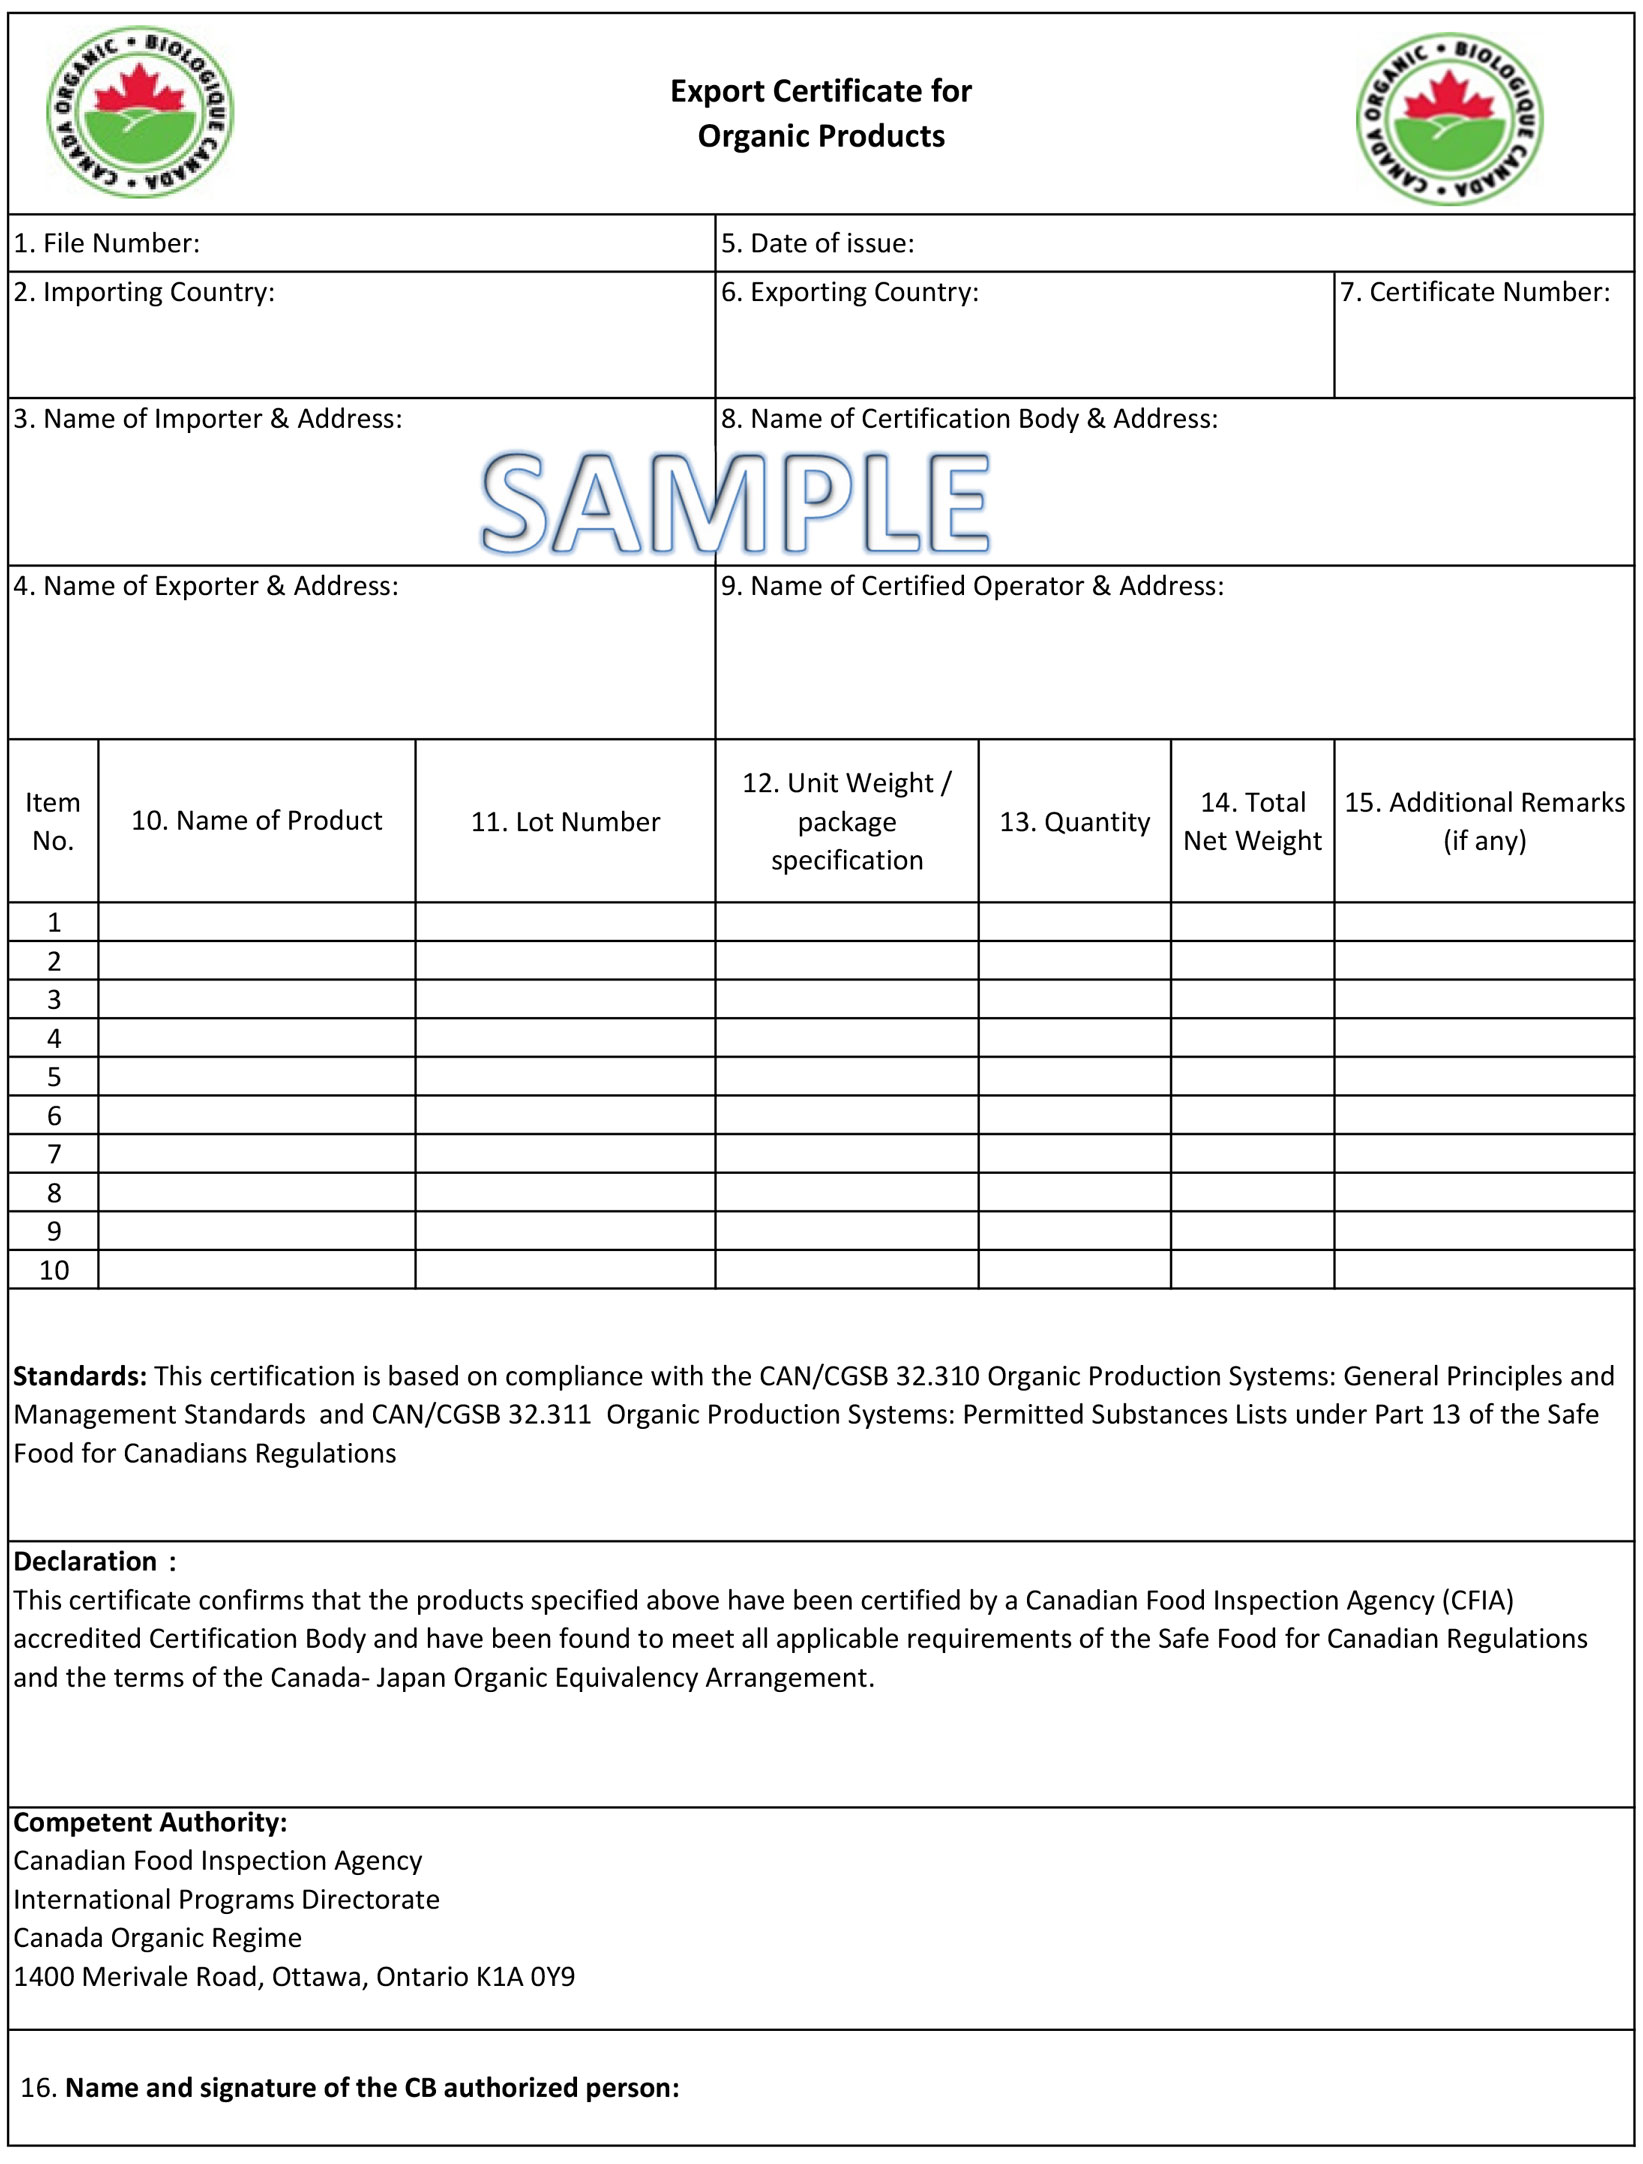 Export Certificate for Organic Products - description follows